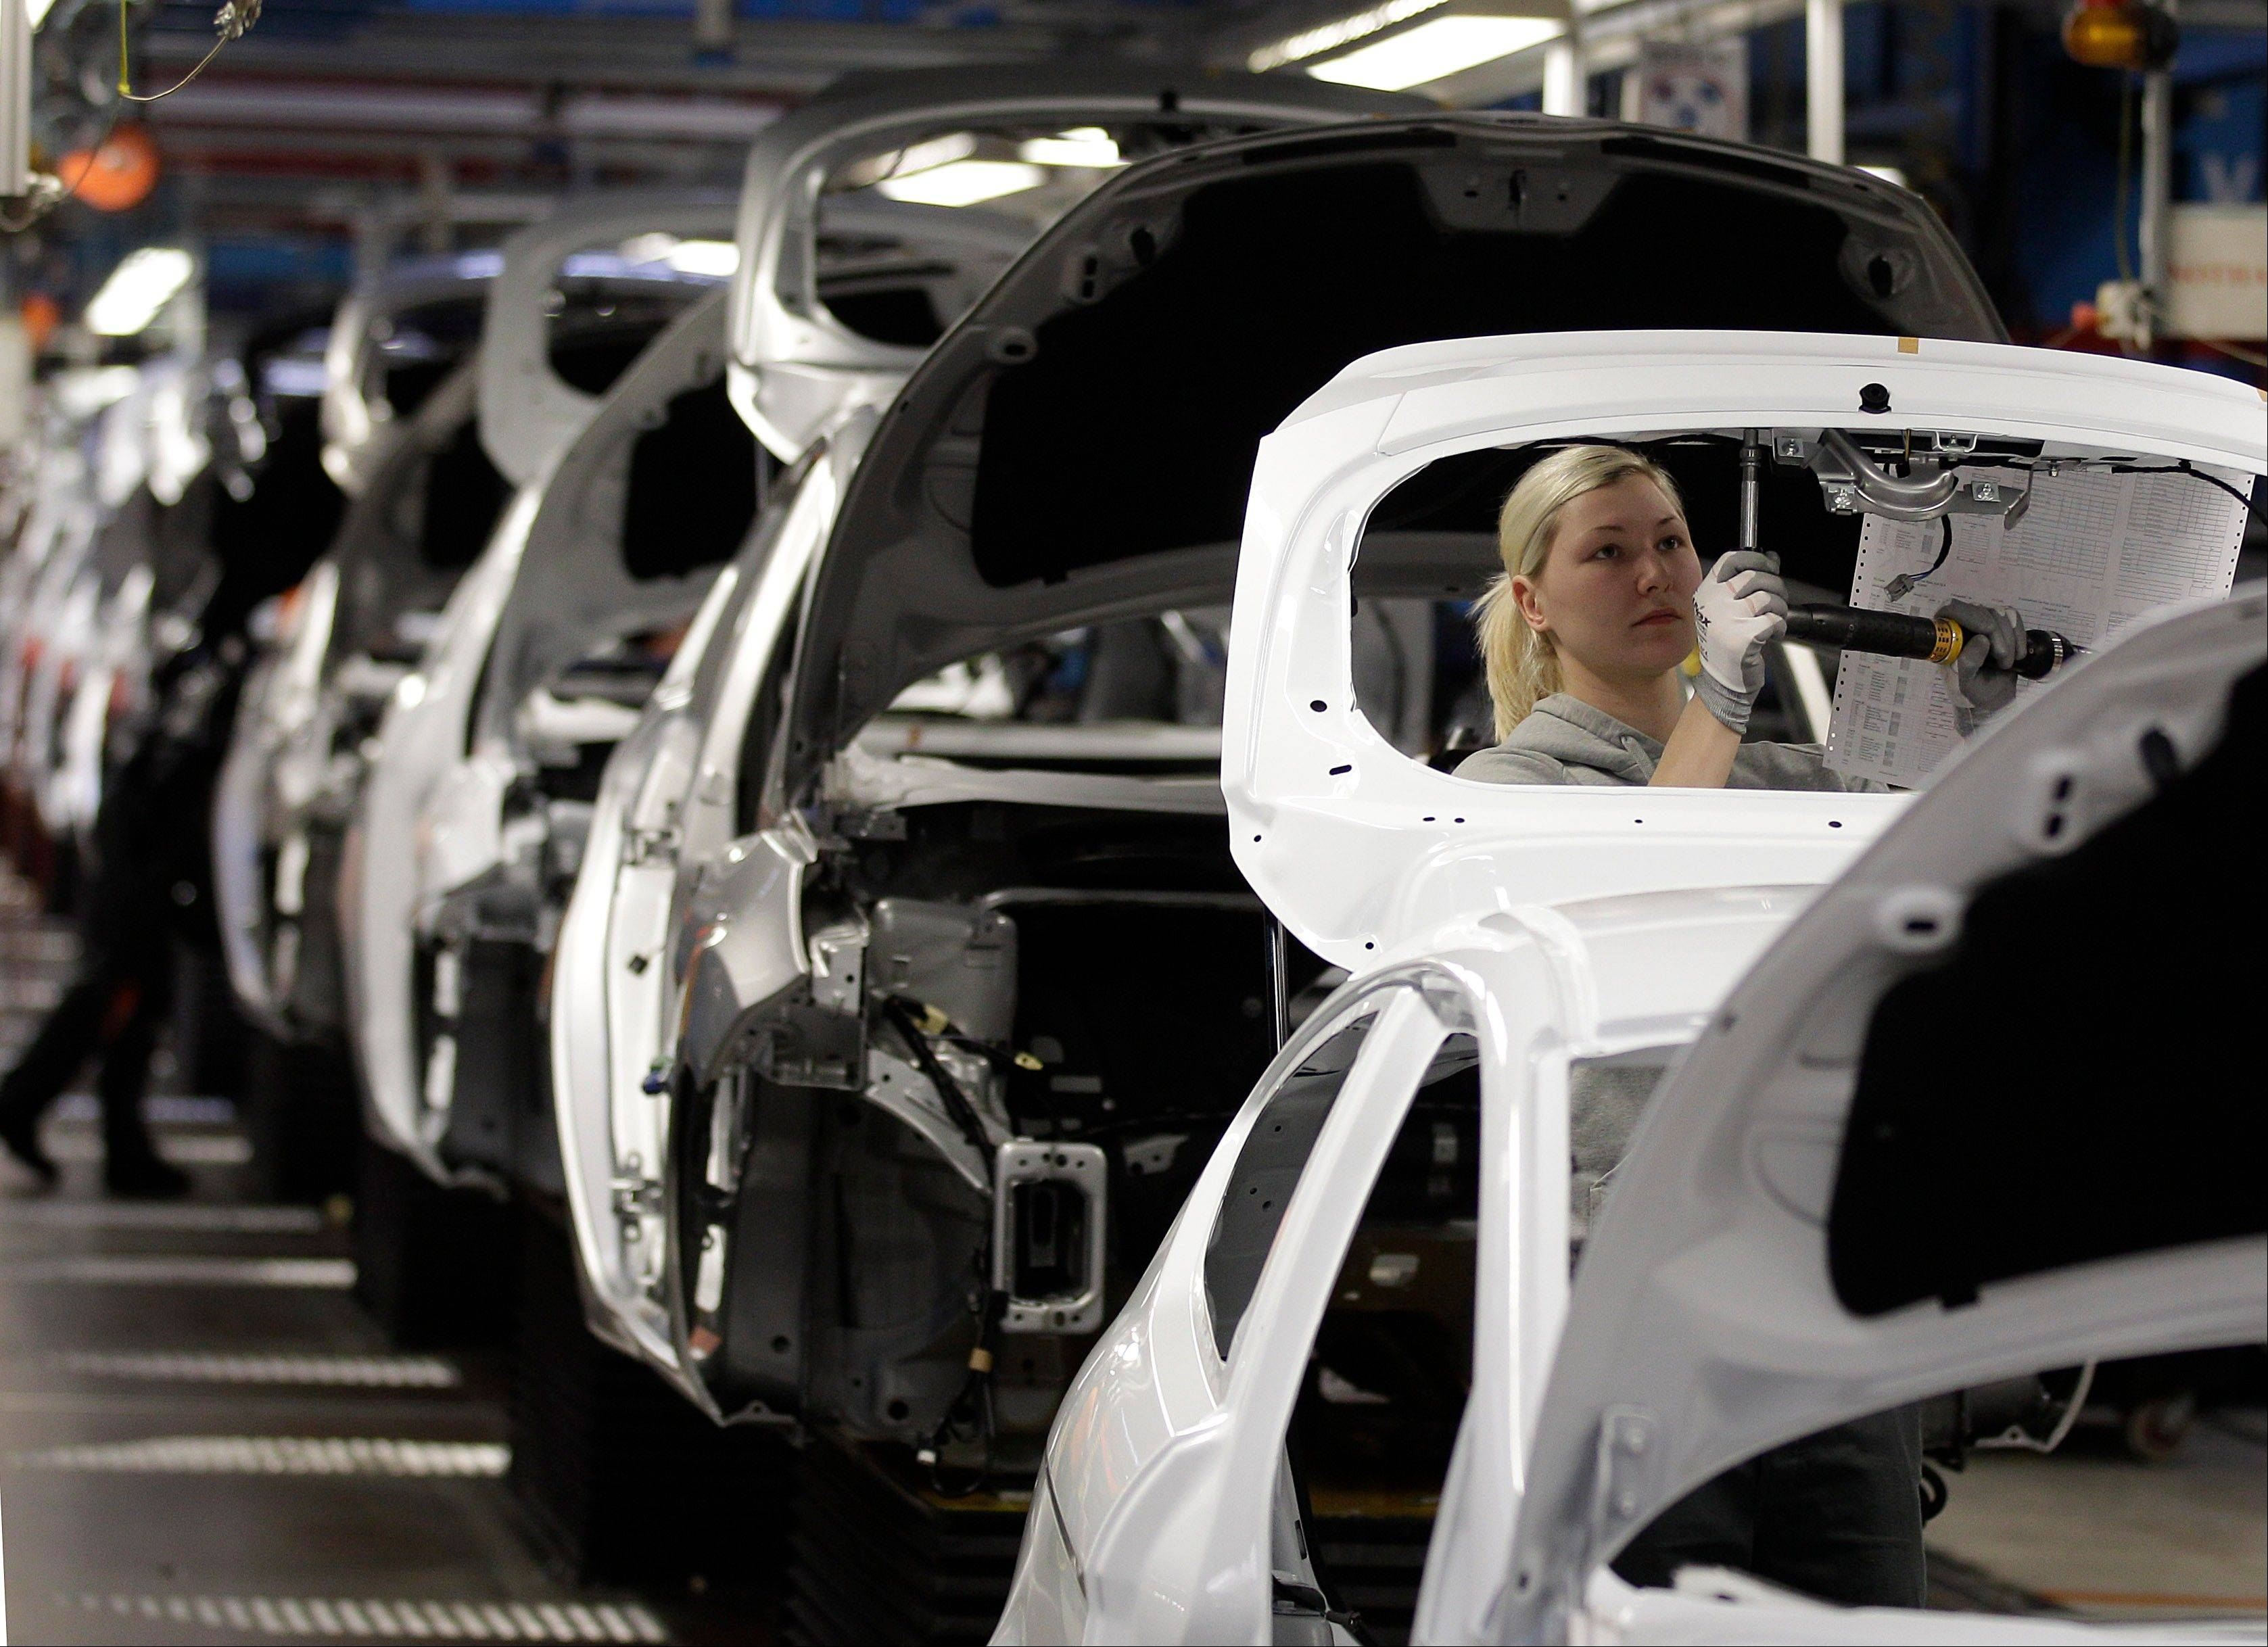 Workers build Ford Fiesta's at a Ford factory in Cologne, Germany. Germany's economy, Europe's largest, grew a larger-than-expected 0.3 per cent in the second quarter as consumer spending and strong exports helped stave off effects of the eurozone debt crisis, the Federal Statistical Office said Tuesday.